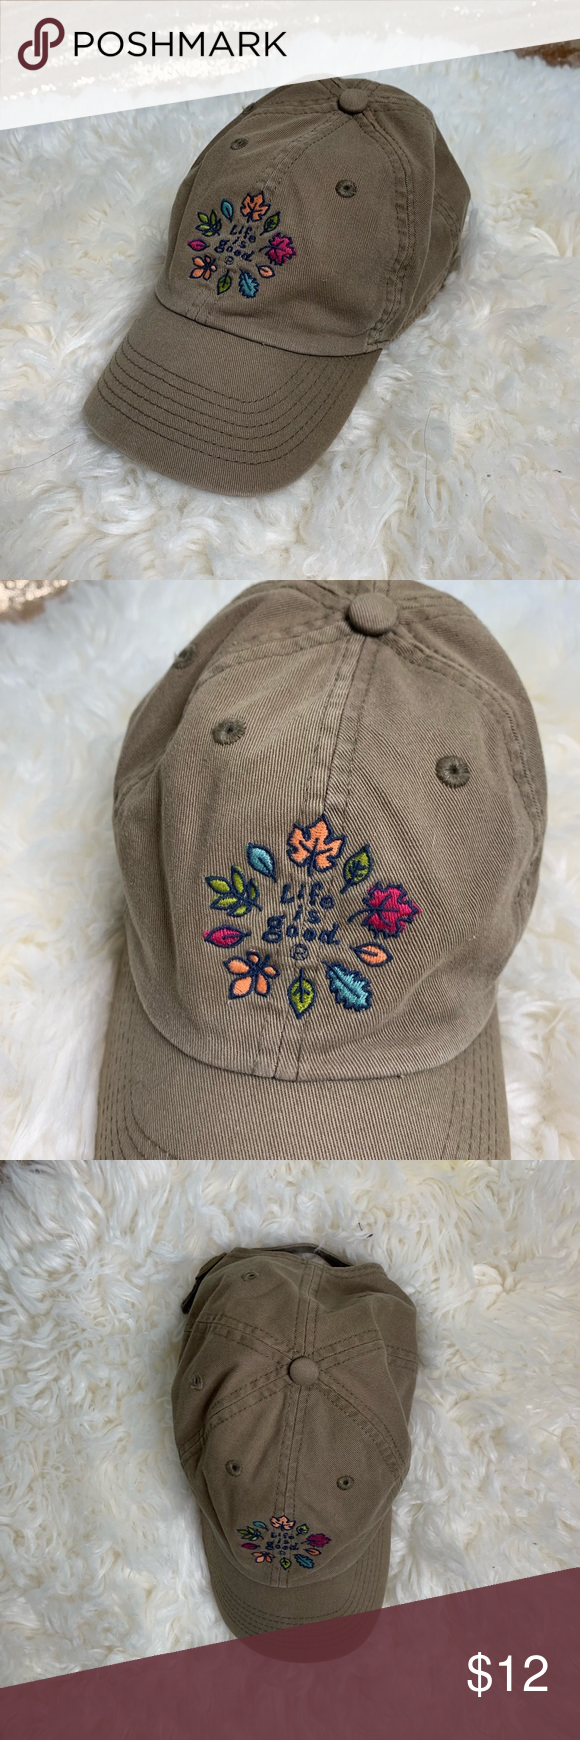 Life Is Good Saddle Embroidered Cap Hat Embroidered Caps Cute Embroidery Caps Hats